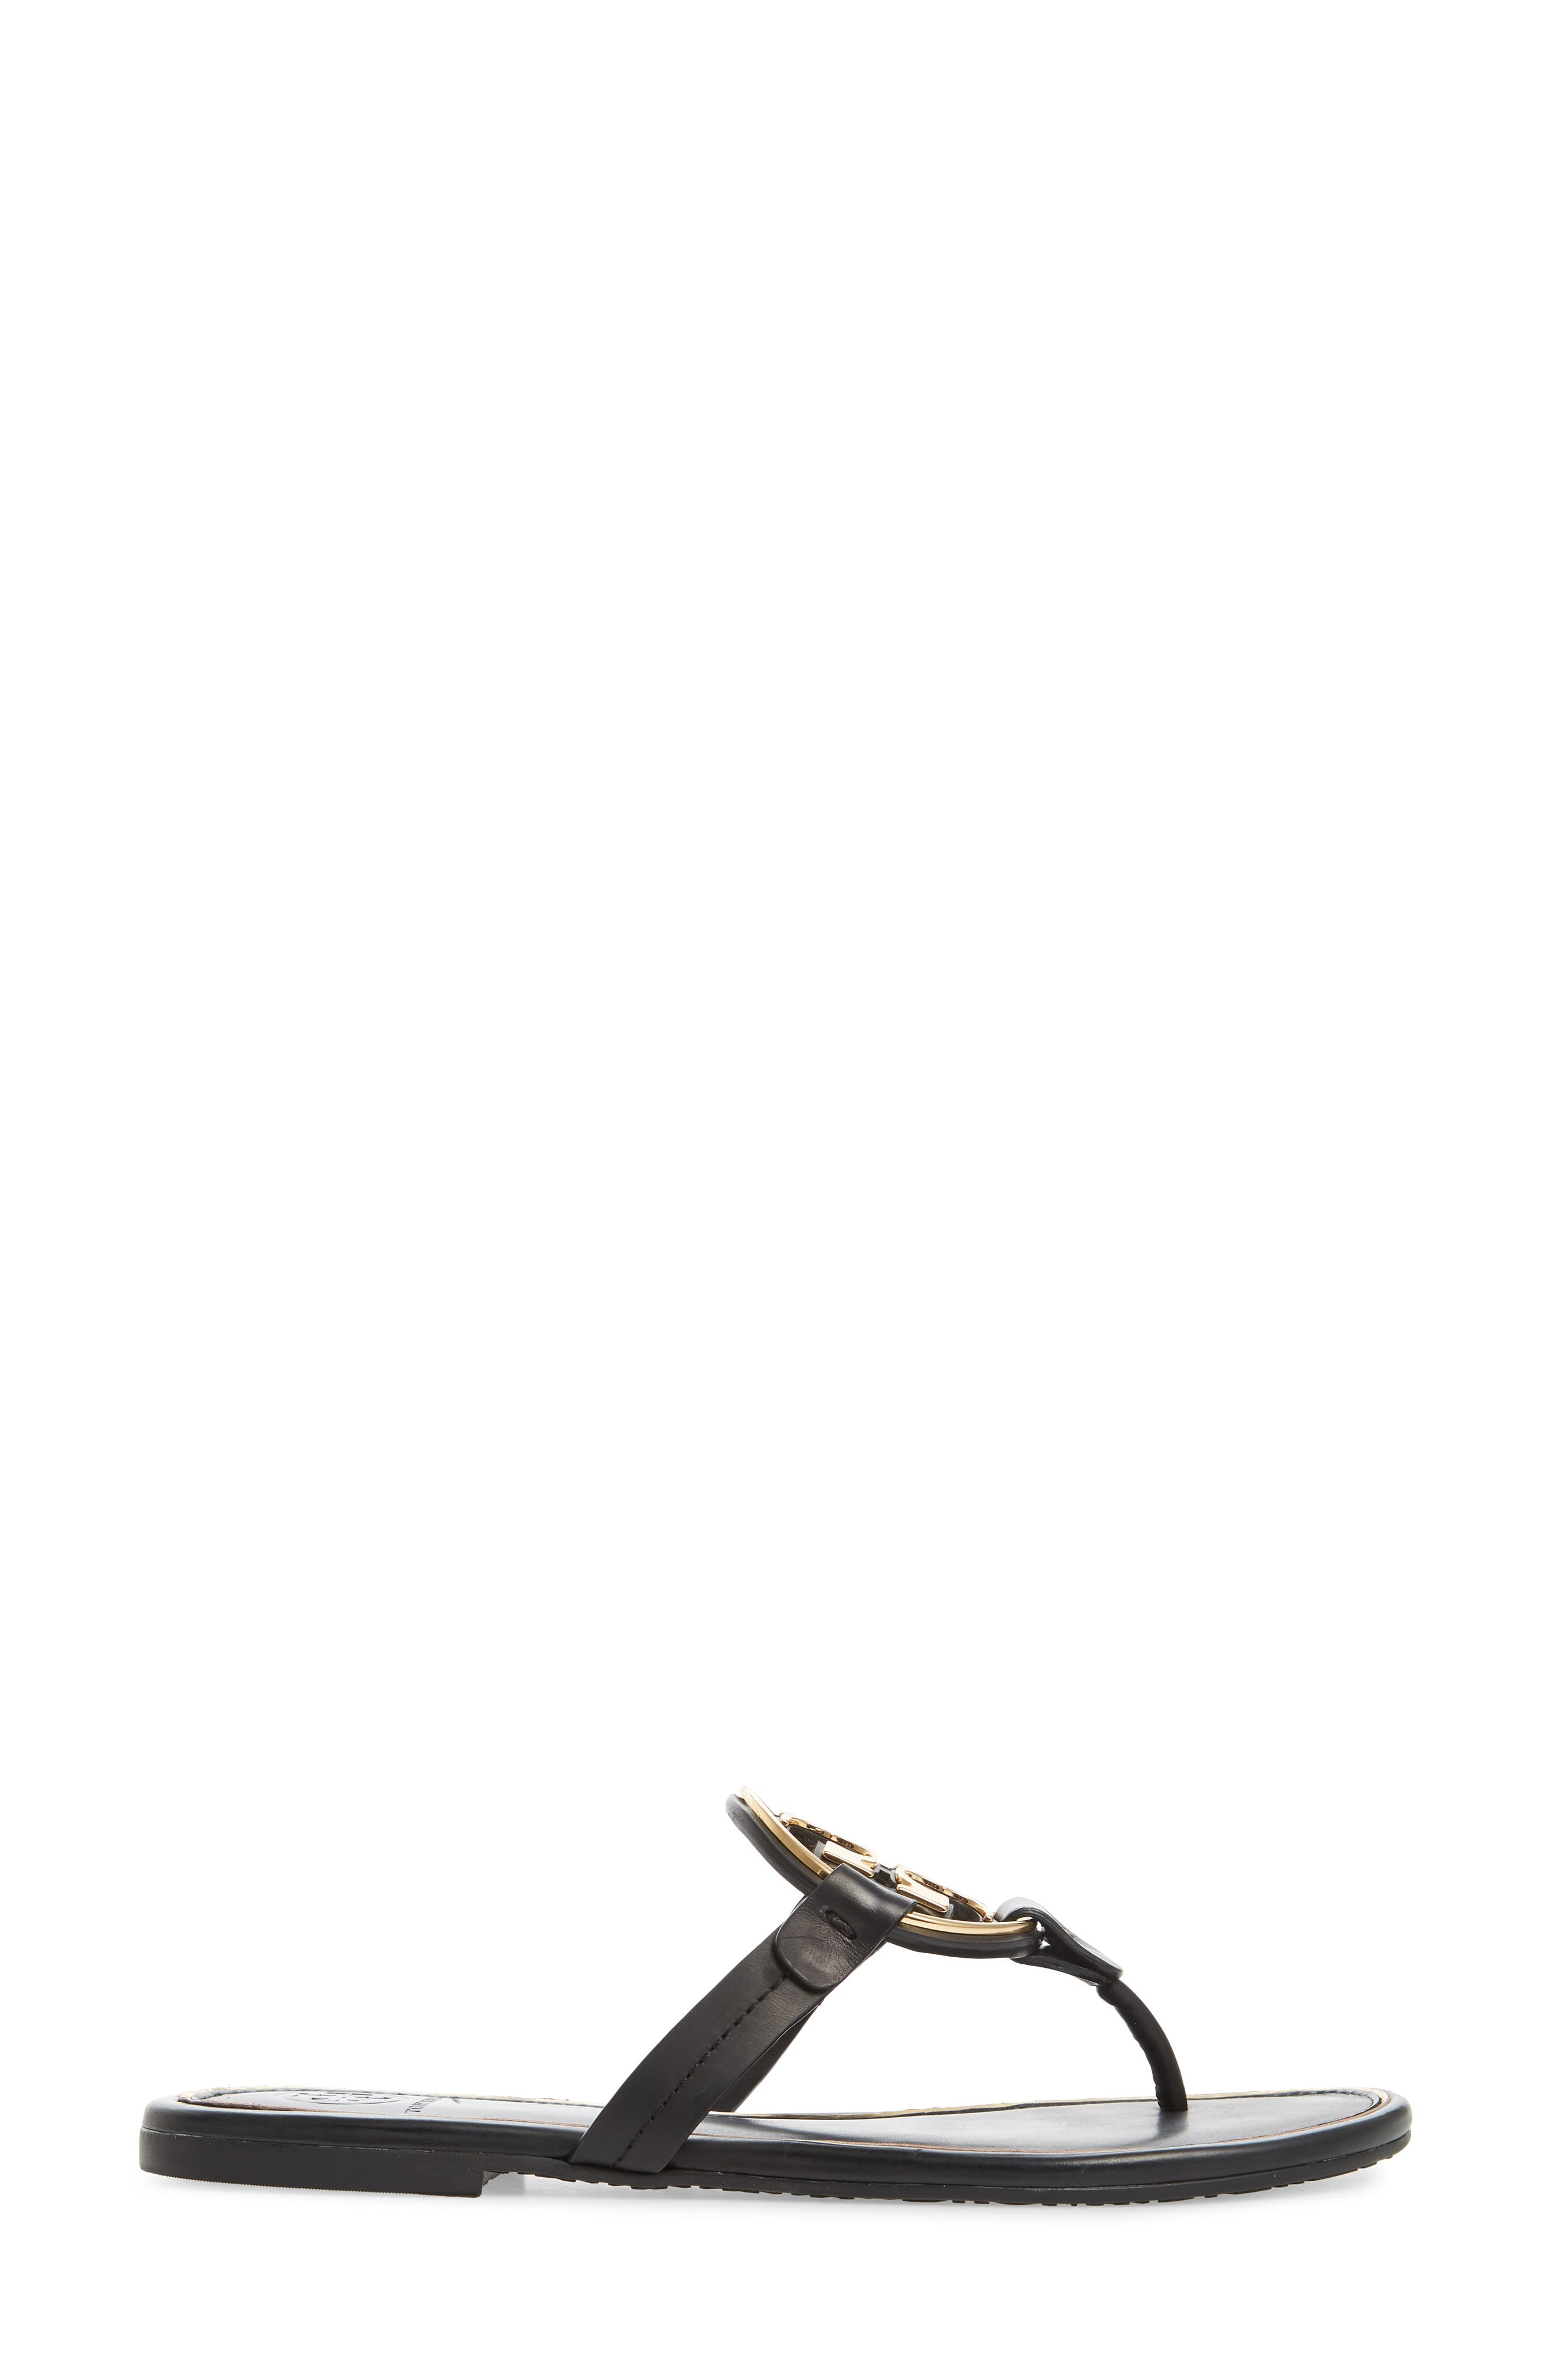 TORY BURCH,                             Metal Miller Flip Flop,                             Alternate thumbnail 3, color,                             PERFECT BLACK/ GOLD